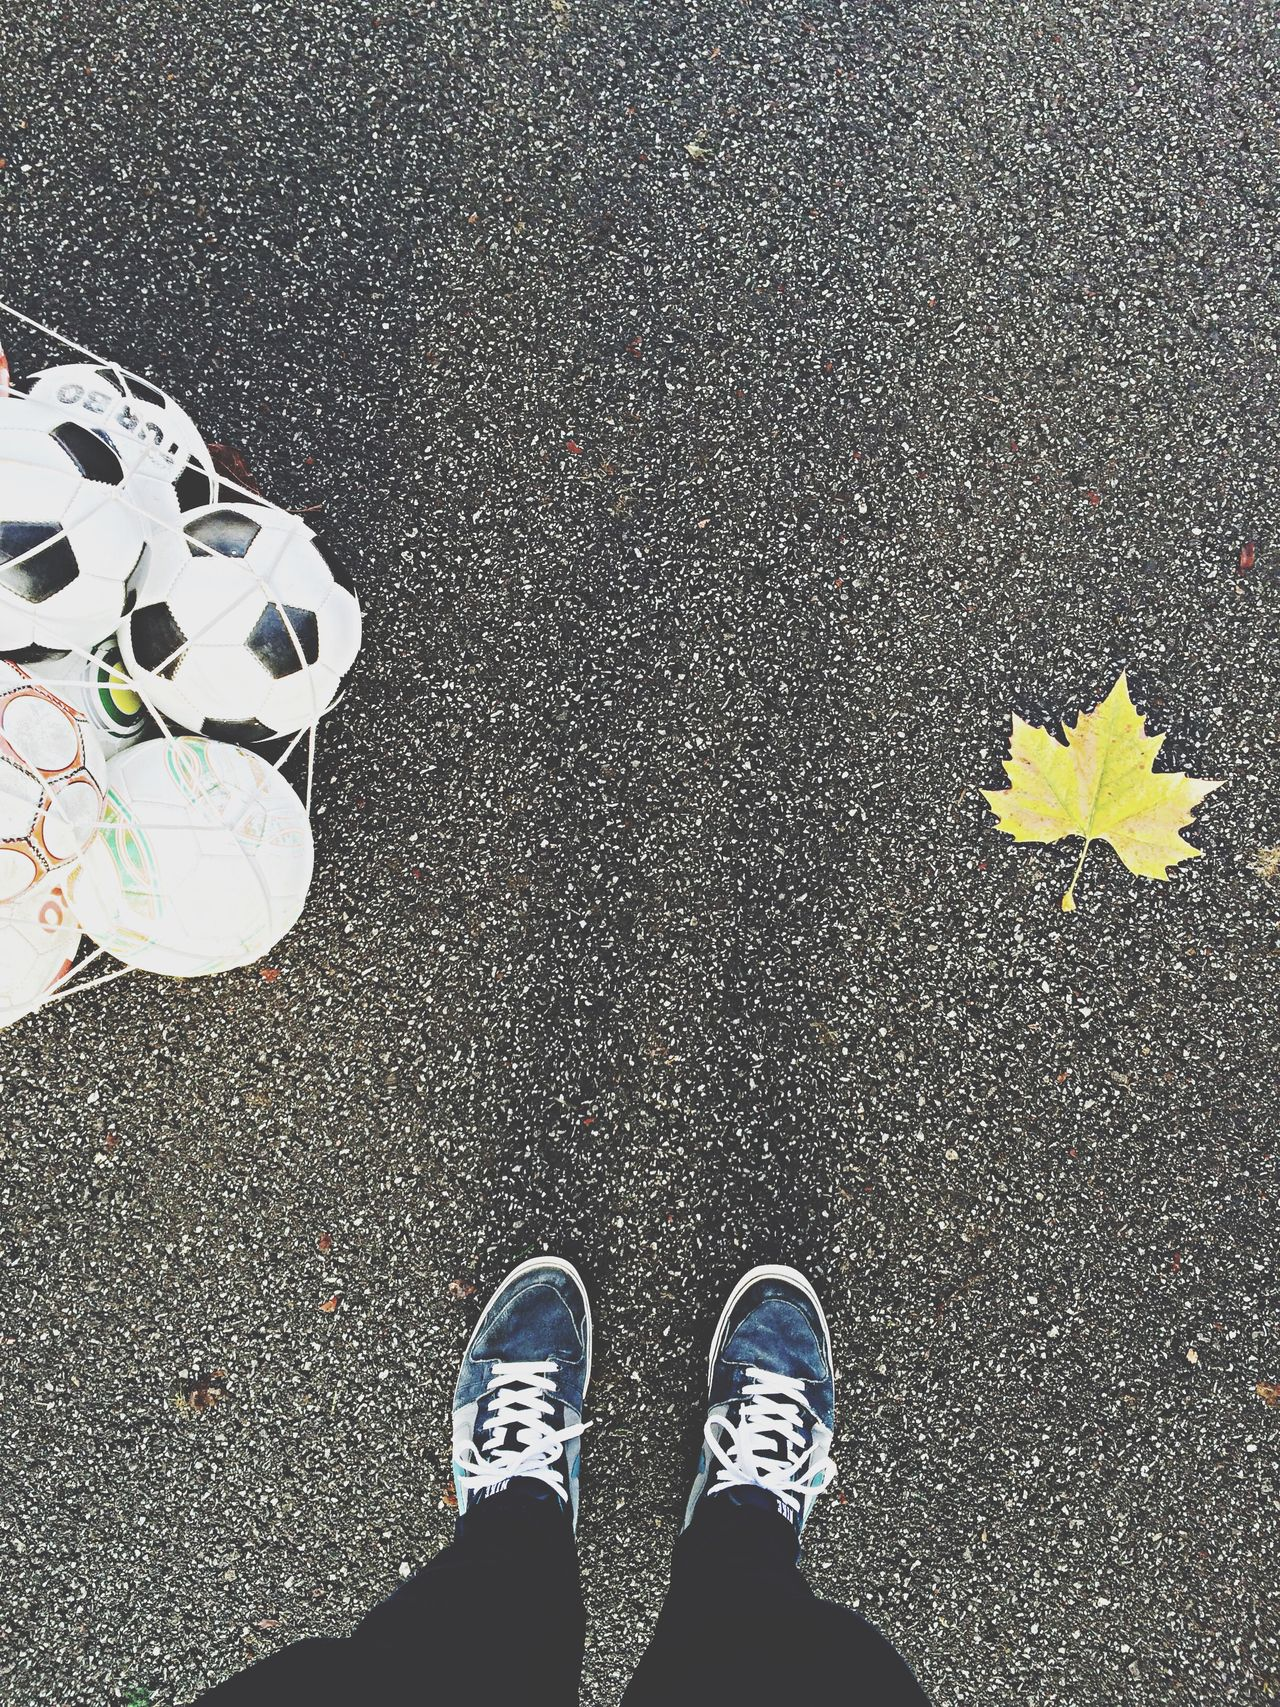 Beautiful stock photos of soccer balls, Autumn, Ball, Change, Day